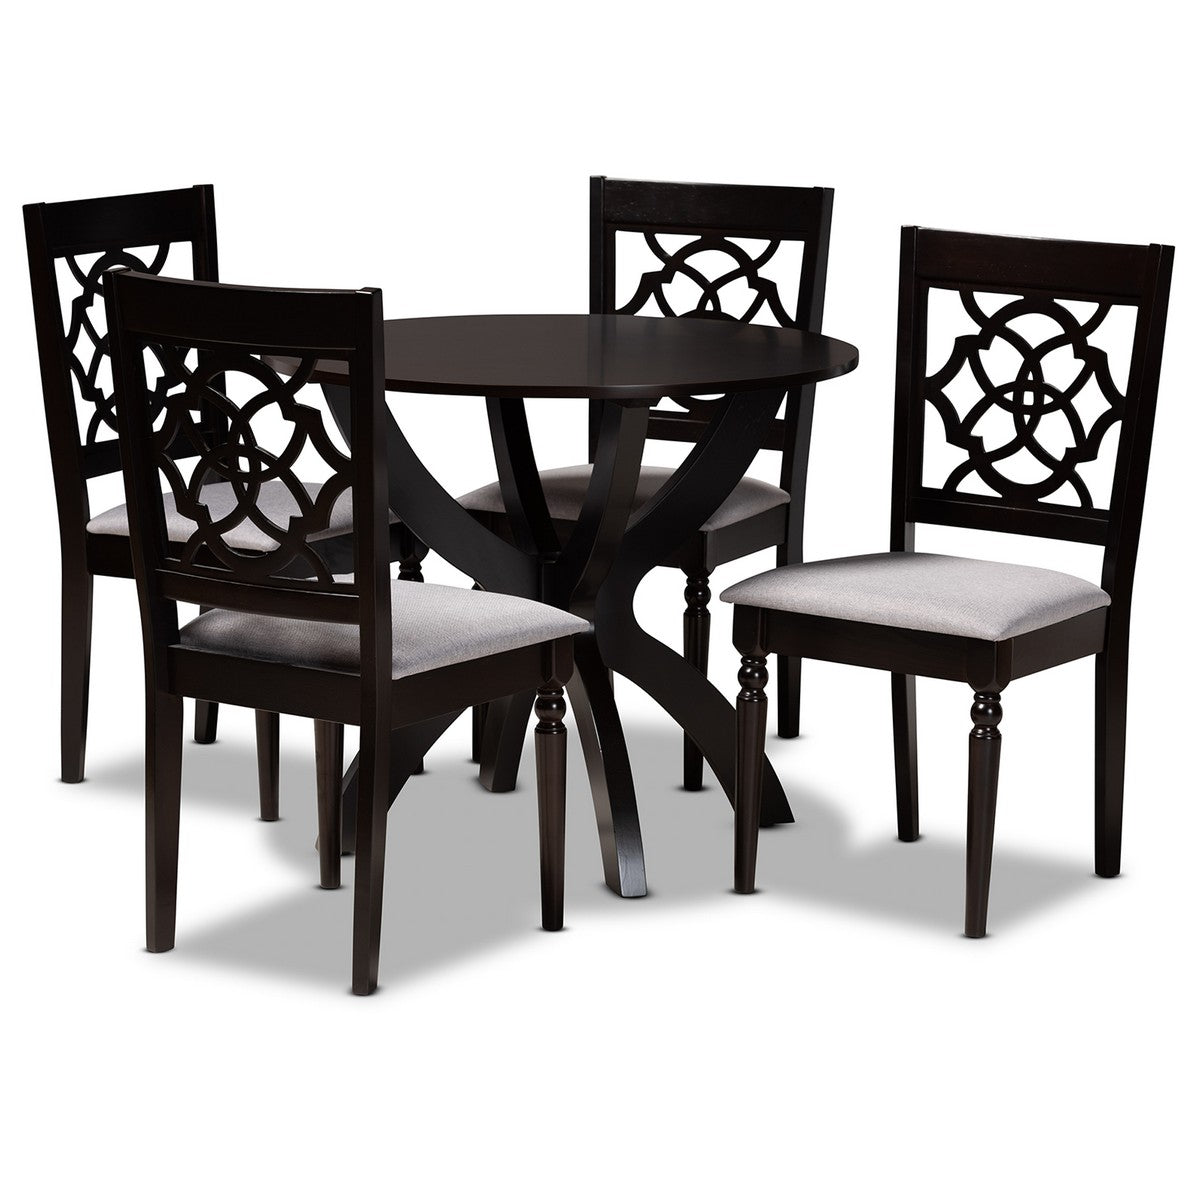 Baxton Studio Tonia Modern and Contemporary Grey Fabric Upholstered and Dark Brown Finished Wood 5-Piece Dining Set Baxton Studio-Dining Sets-Minimal And Modern - 1